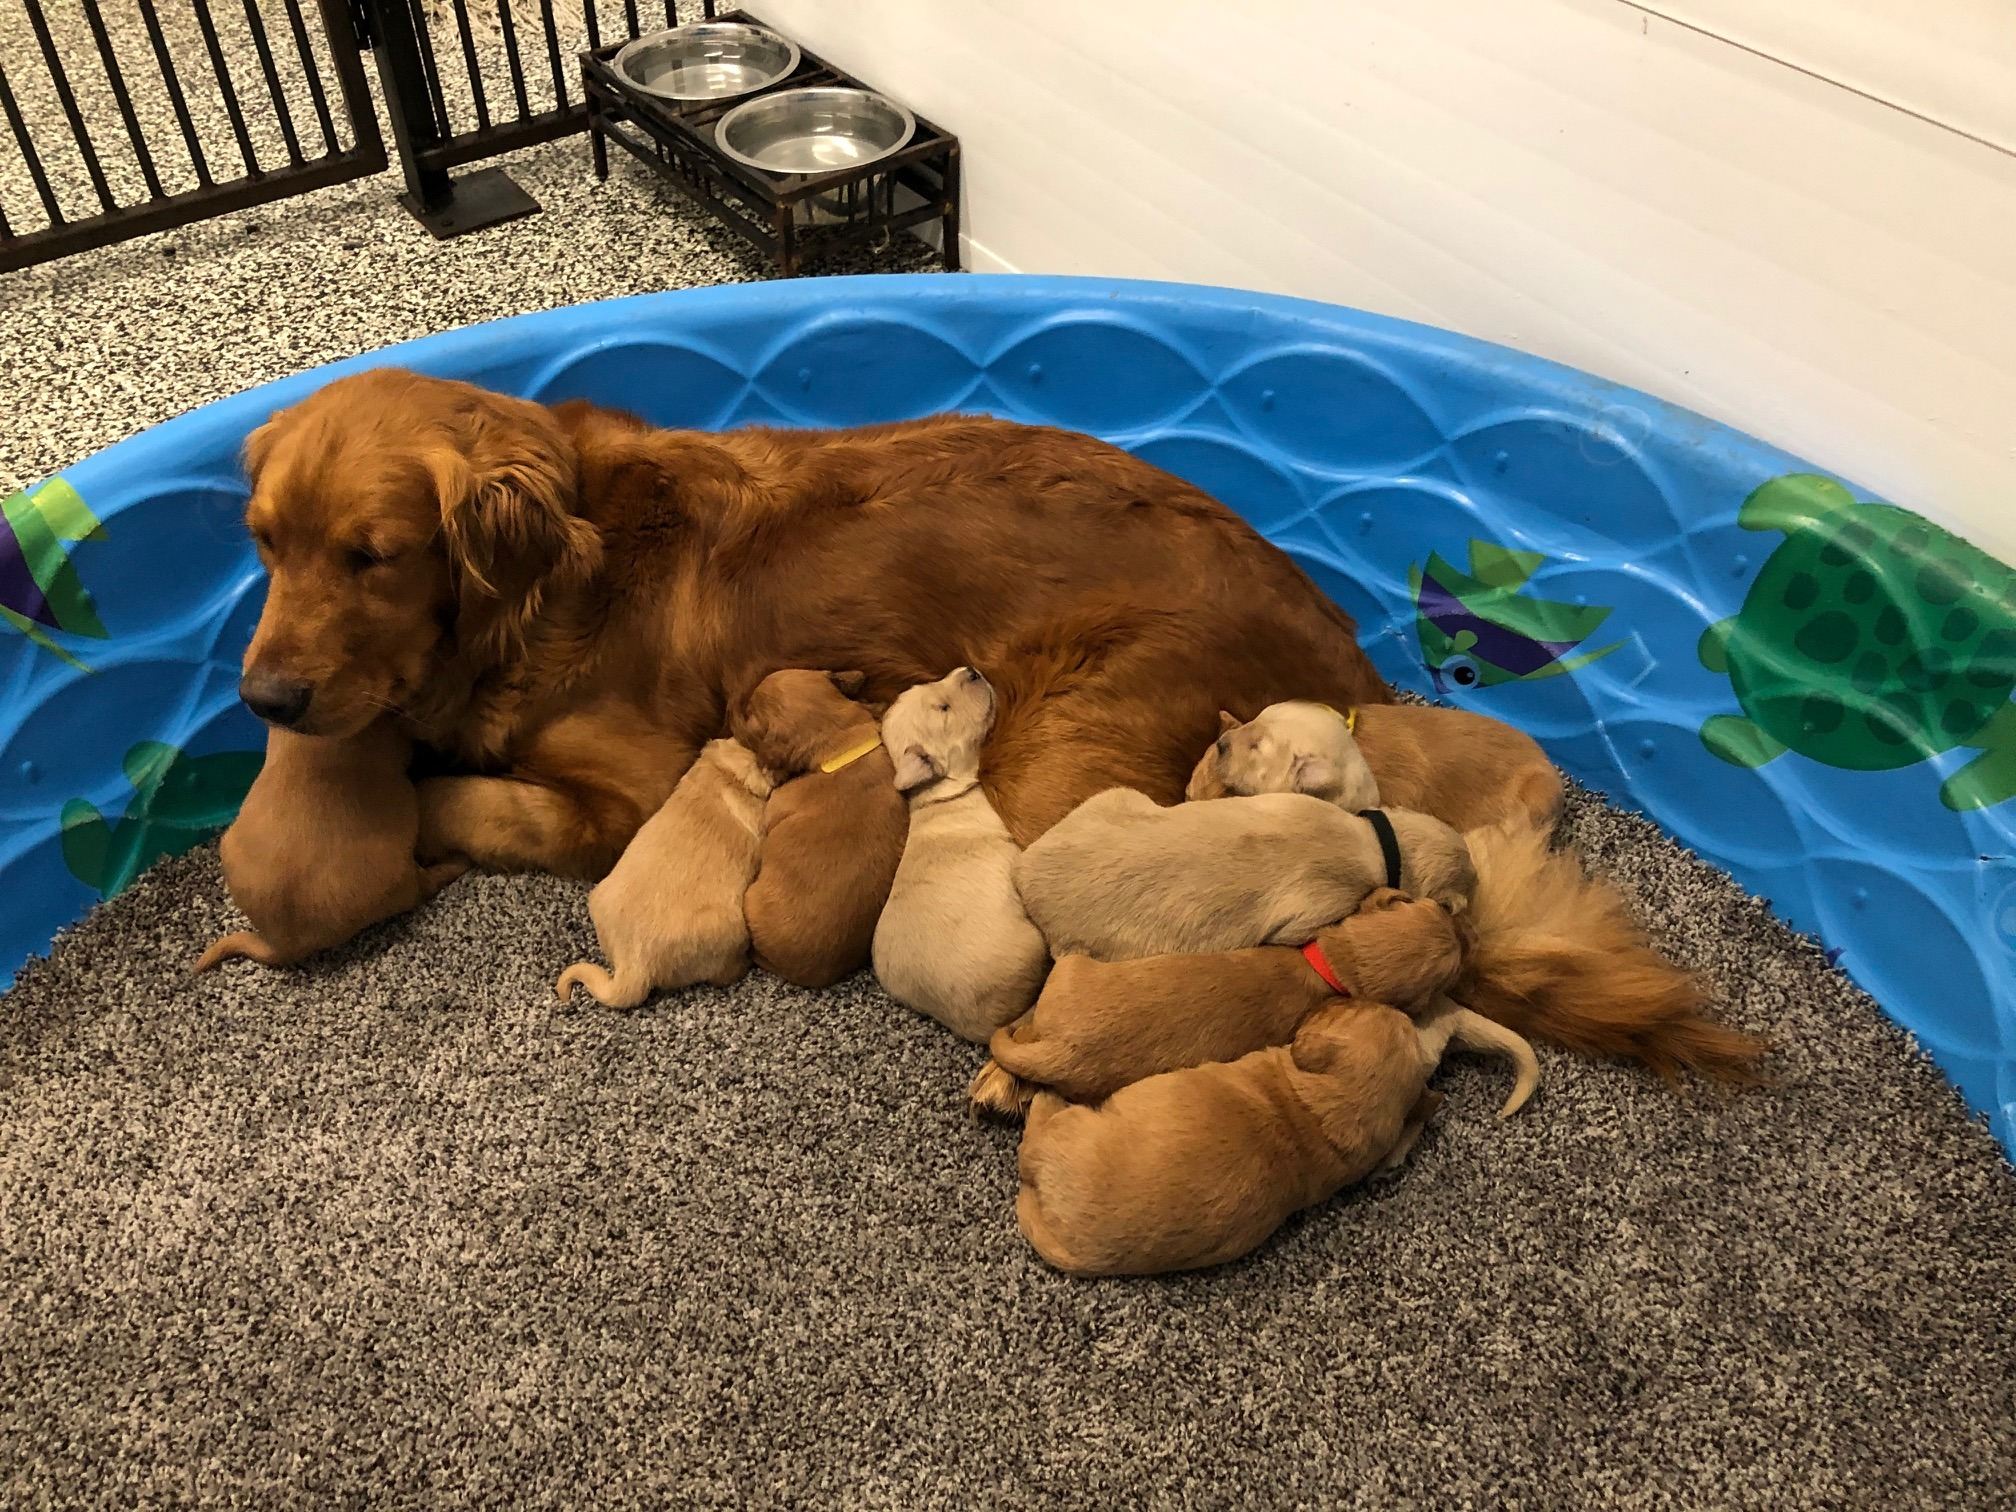 Trixie and Her Pups